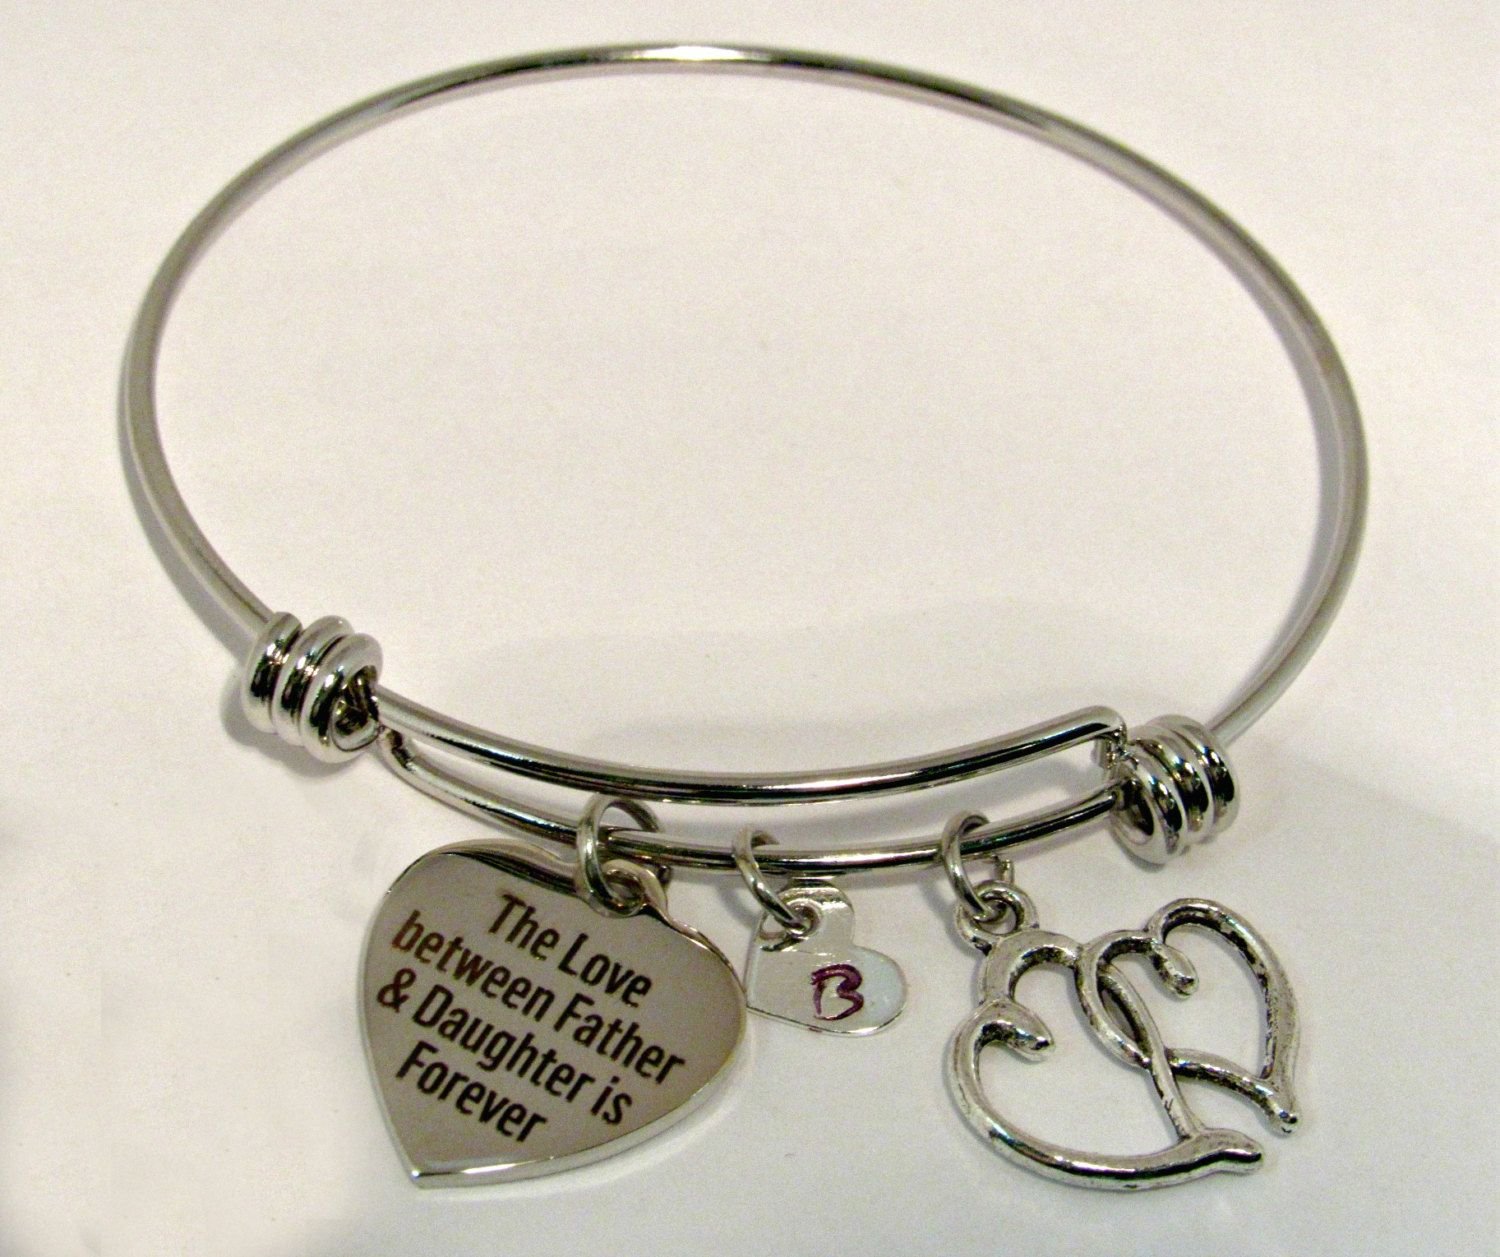 bracelets bracelet heartbeat jewelry keepsakes bangles stainless charm heart steel bangle